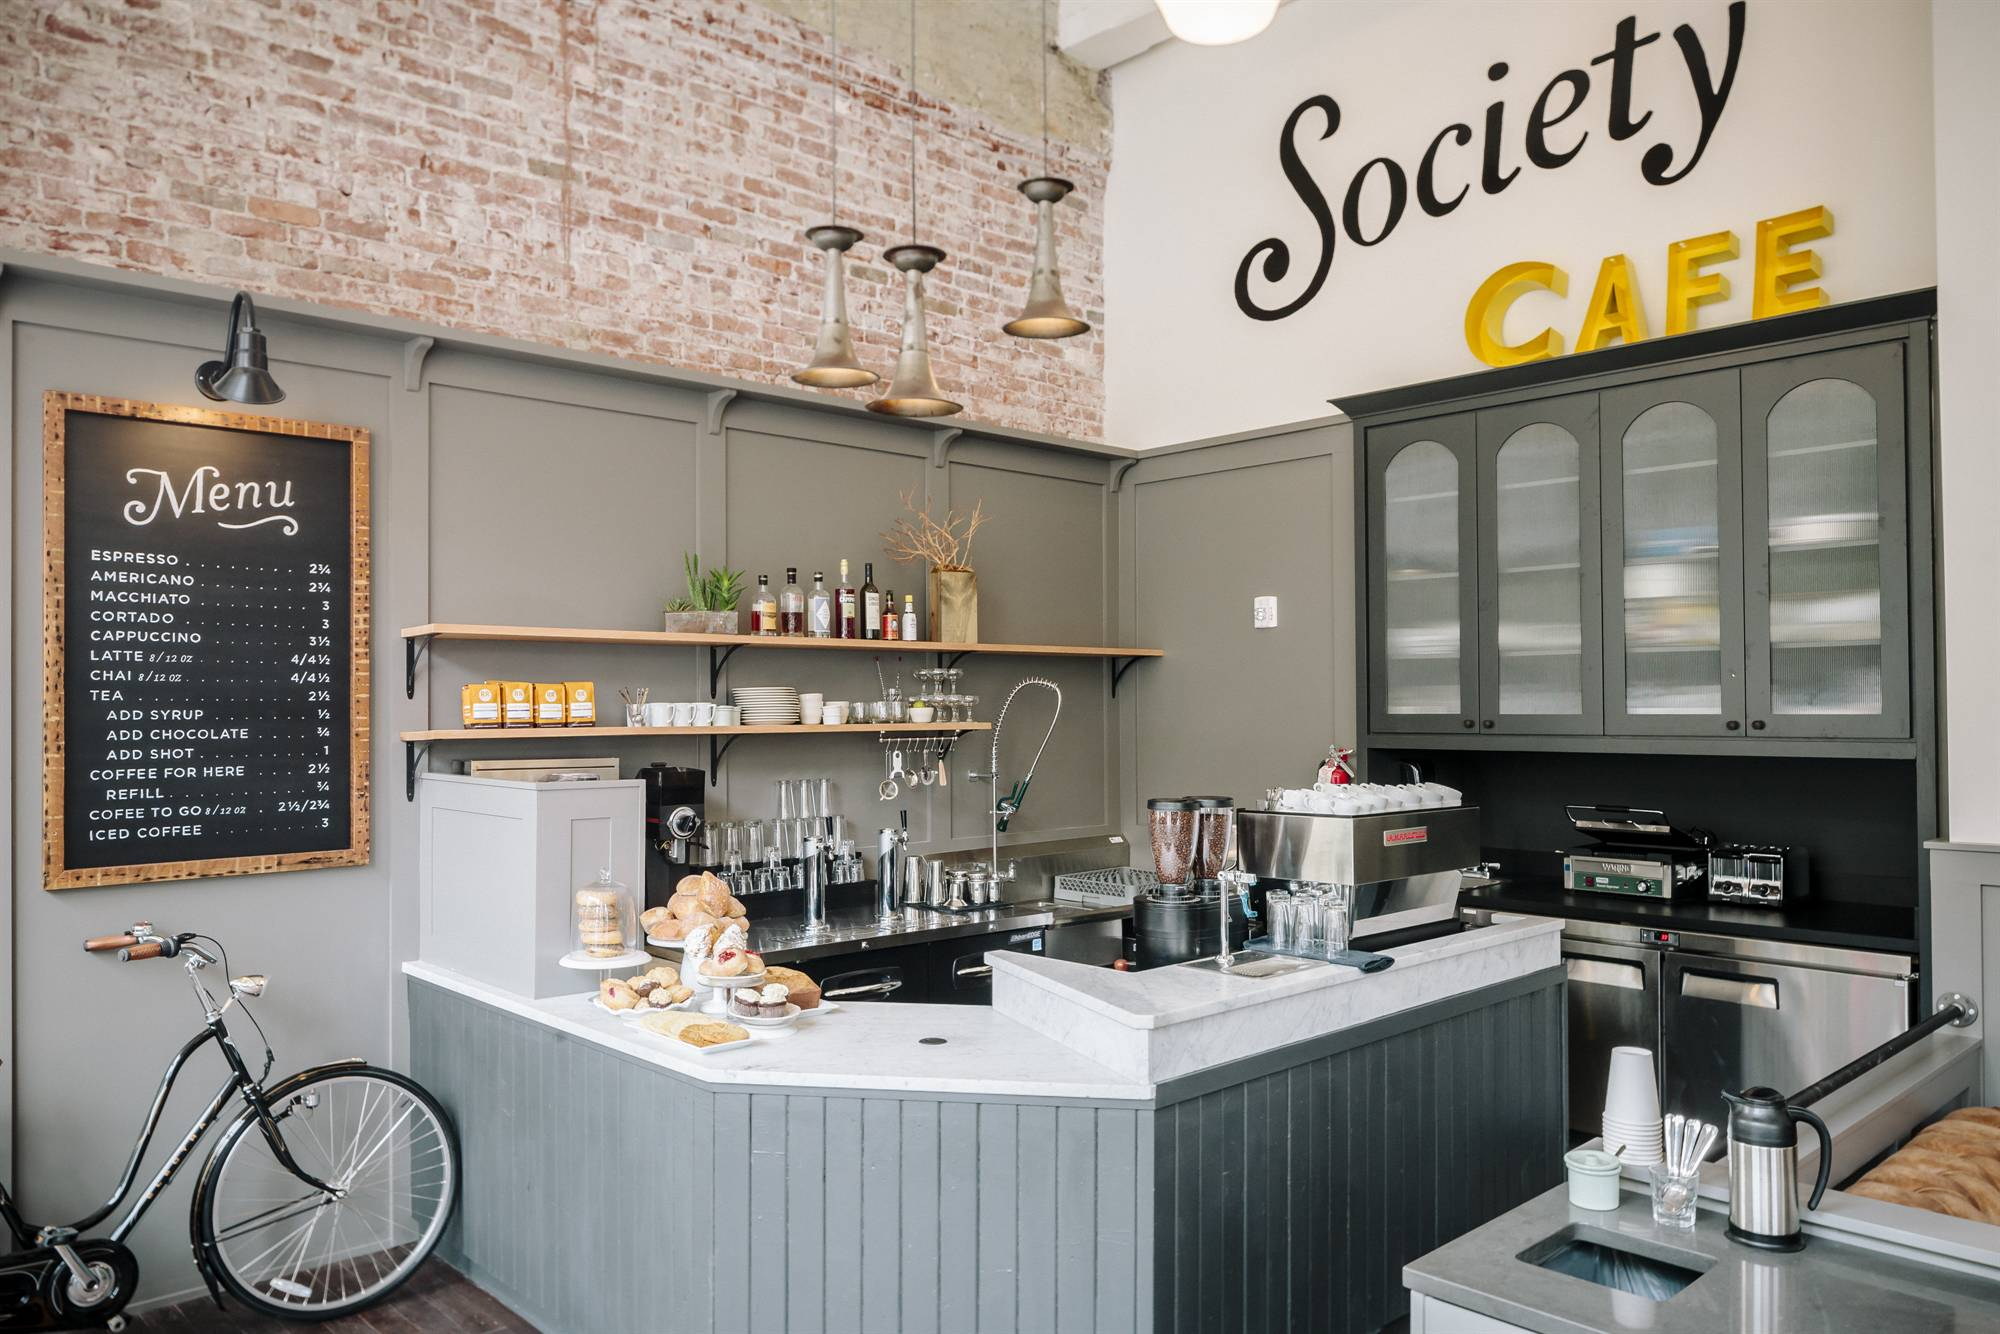 Newly Opened The Society Cafe & Lounge Launches Oysters - Eater Portland